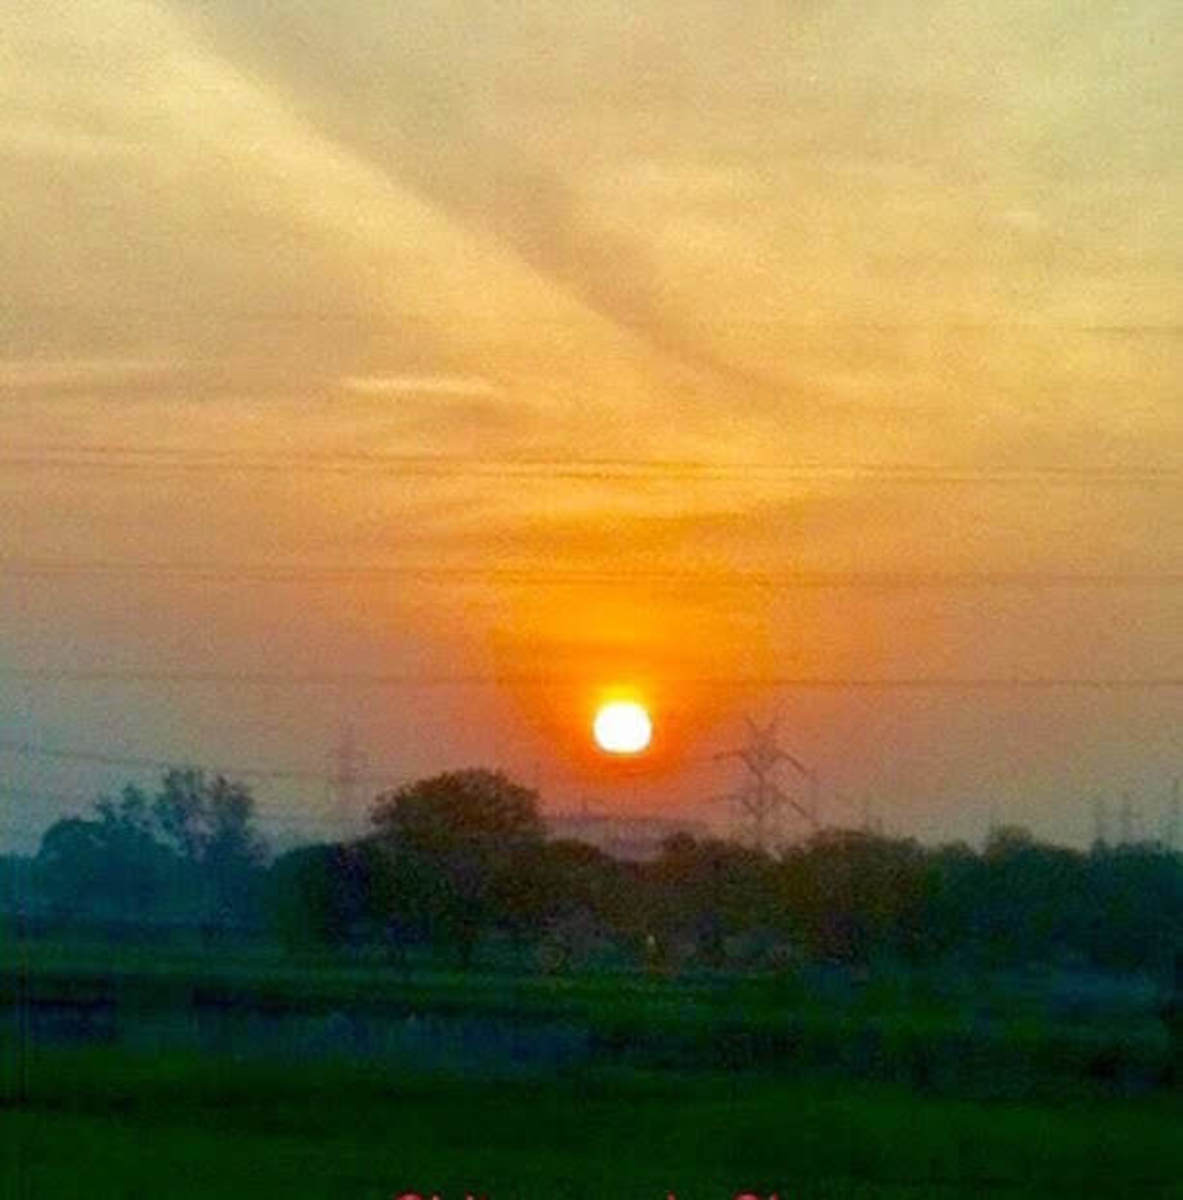 There is only 'One' Sun, to spread light to the entire World